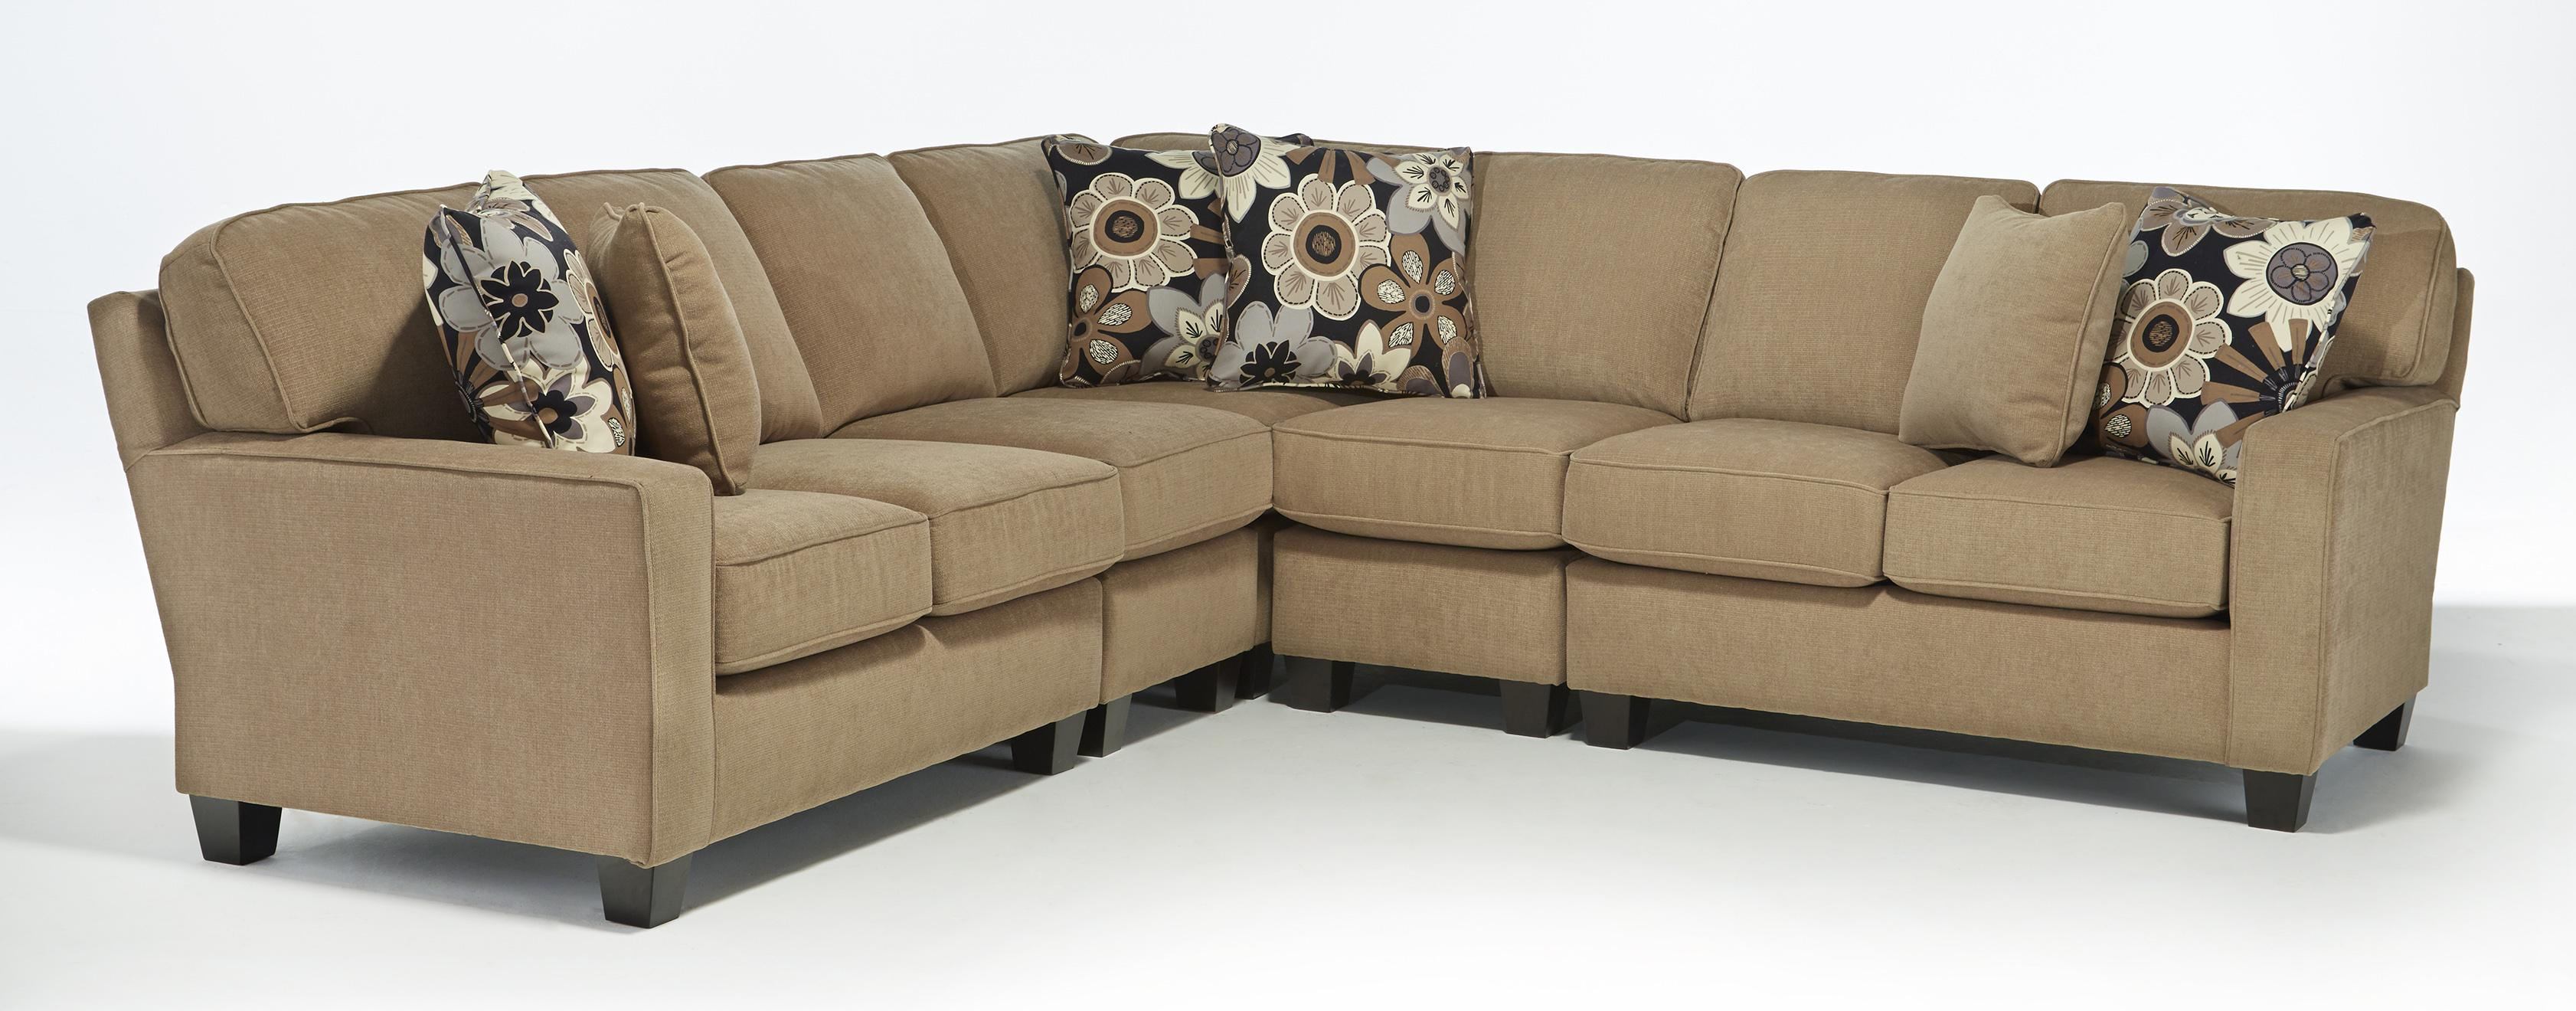 Five piece customizable sectional sofa with track arms and